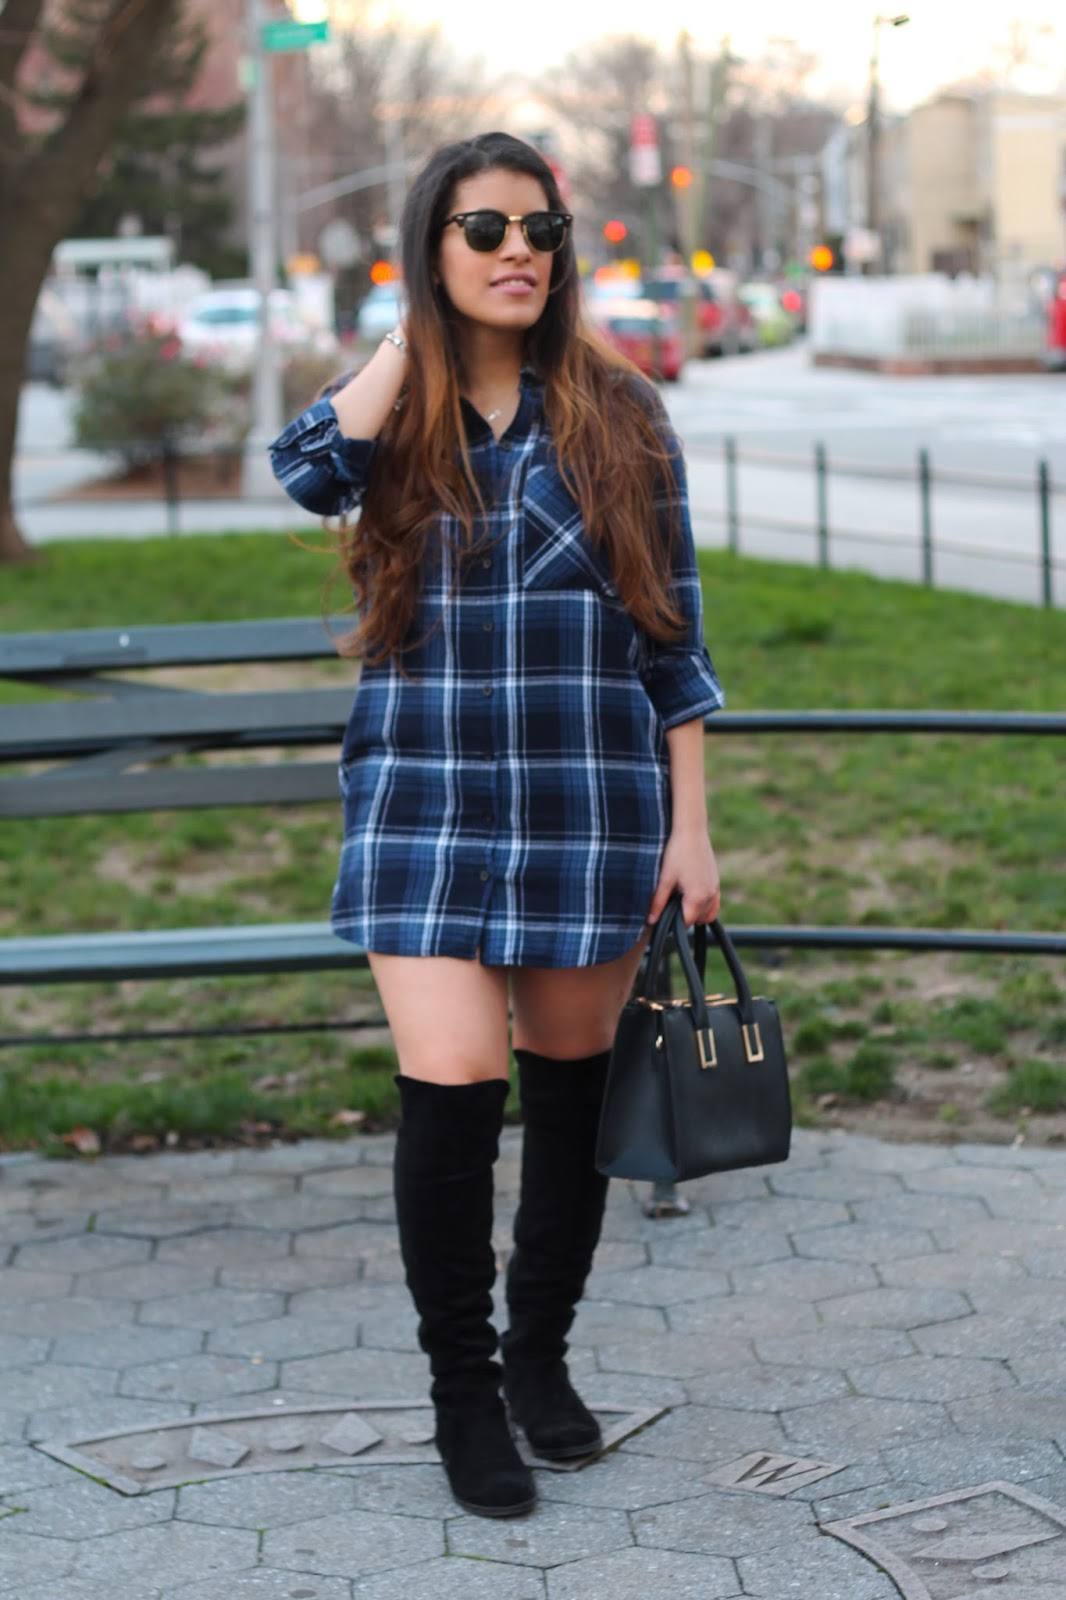 forever 21, plaid flannel shirt dress, plaid, flannel, winter, ray-ban, h&m, marshalls, knee-high boots, winter style, fashion, fashion blogger, new york, nyc, new york blogger, latina, blue, black, shades of blue, black, gold, sunglasses, ray bans, ray bans sunglasses, club master, ray ban club master